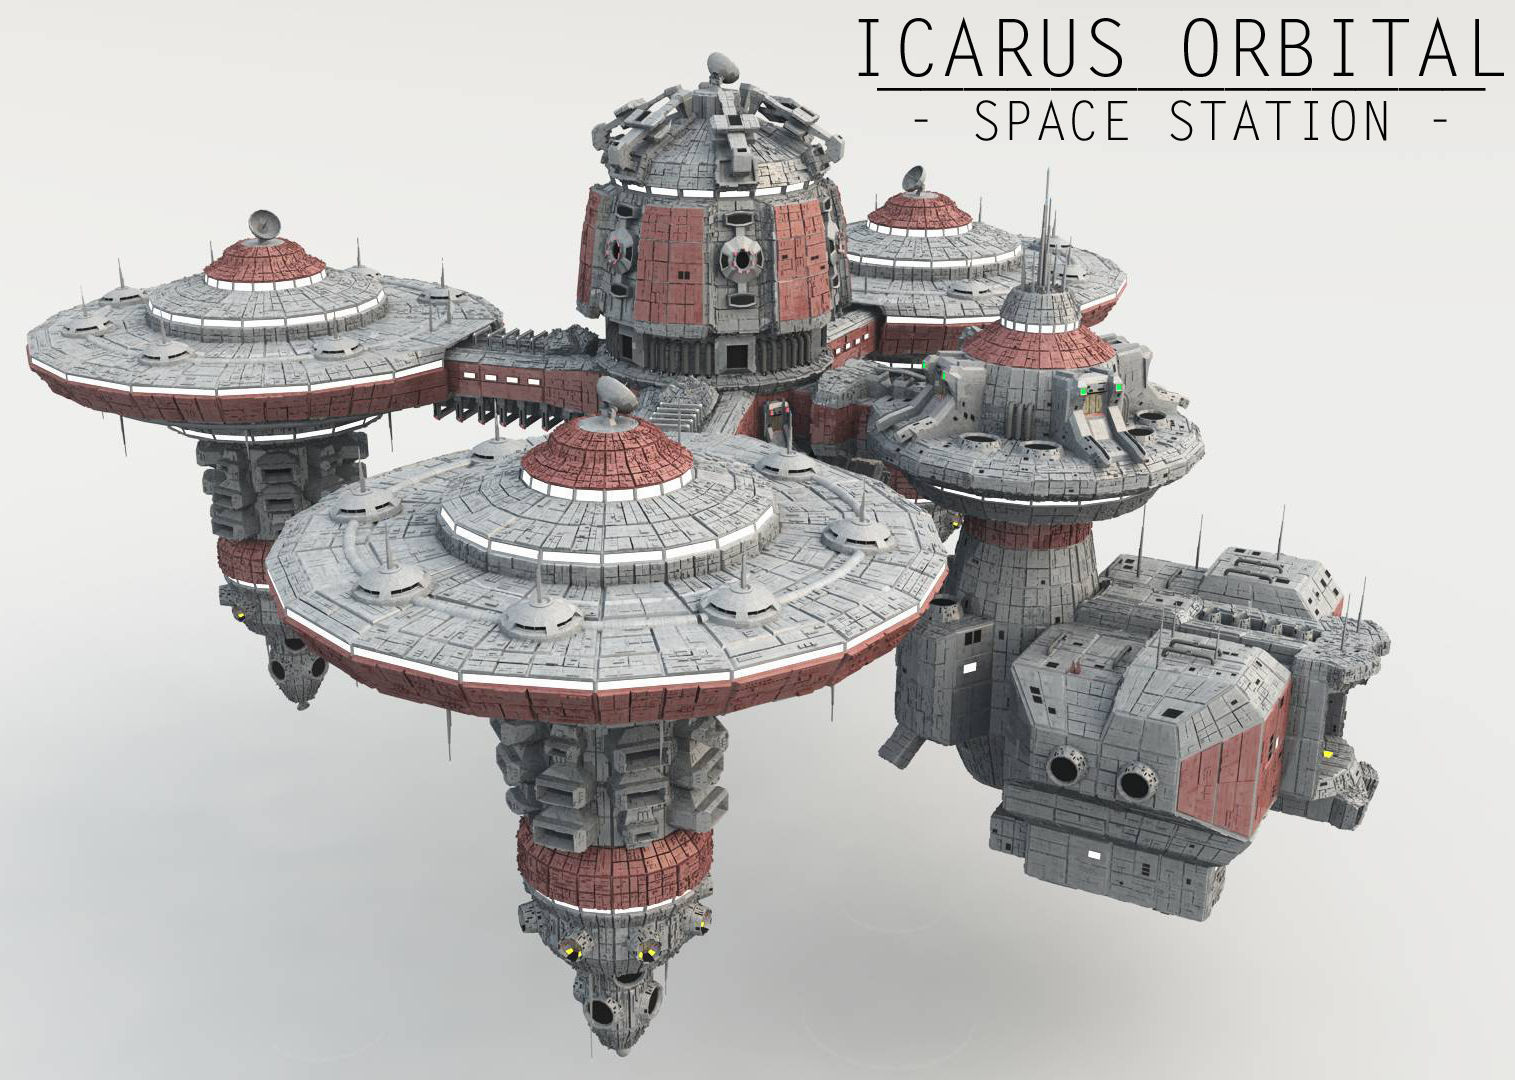 Icarus Orbital - Space Station